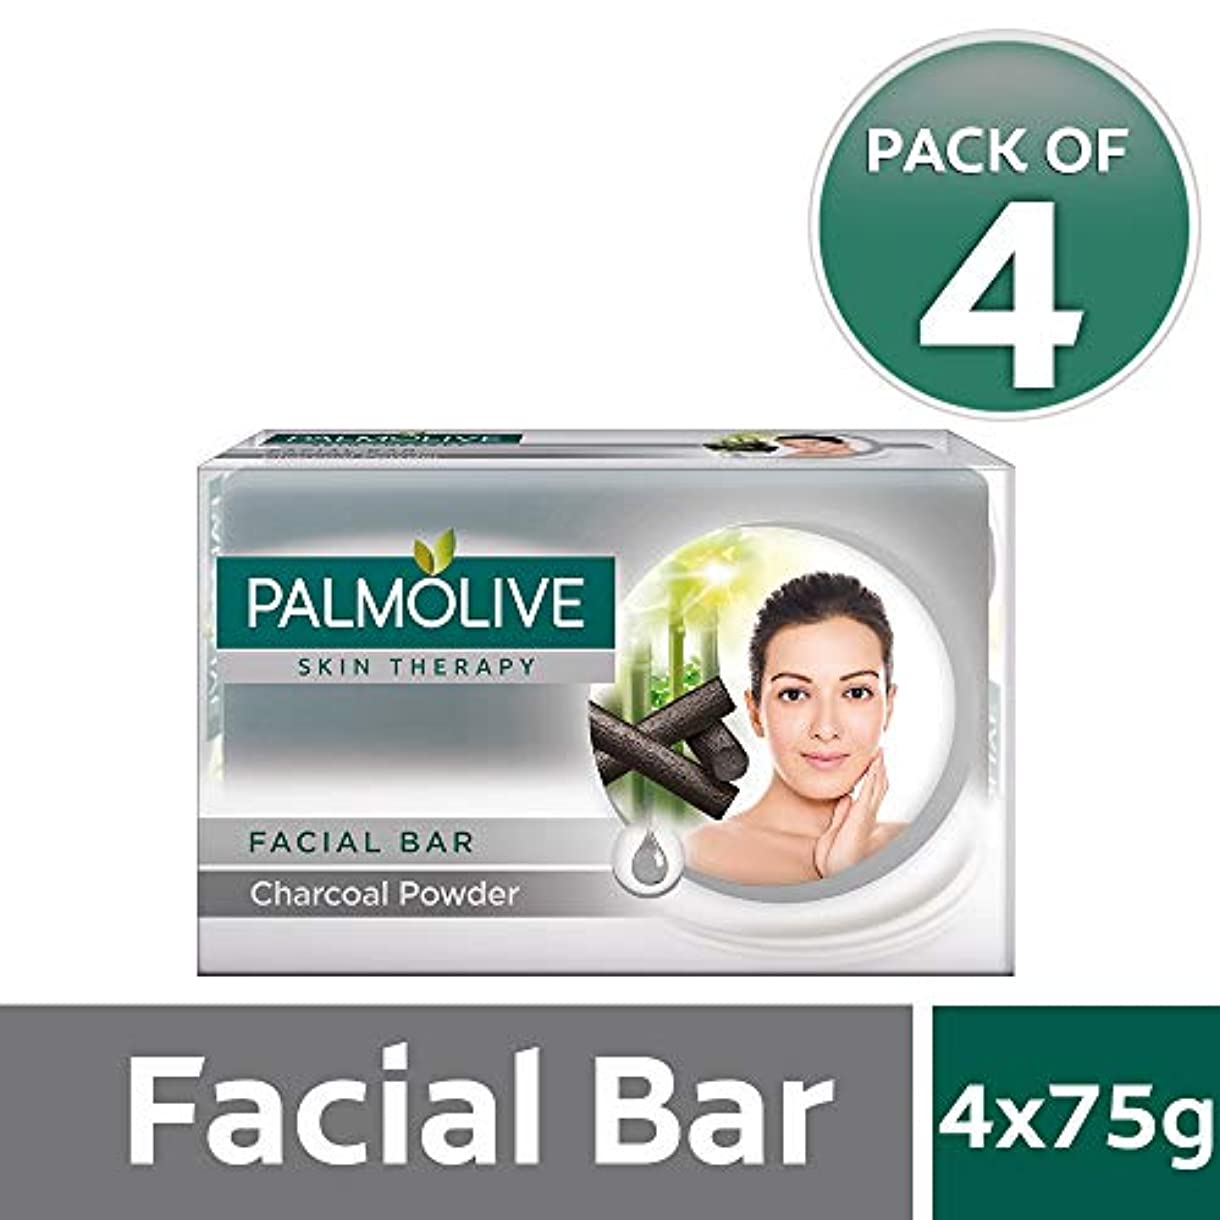 トラップ解釈的見えないPalmolive Skin Therapy Facial Bar Soap with Charcoal Powder - 75g (Pack of 4)